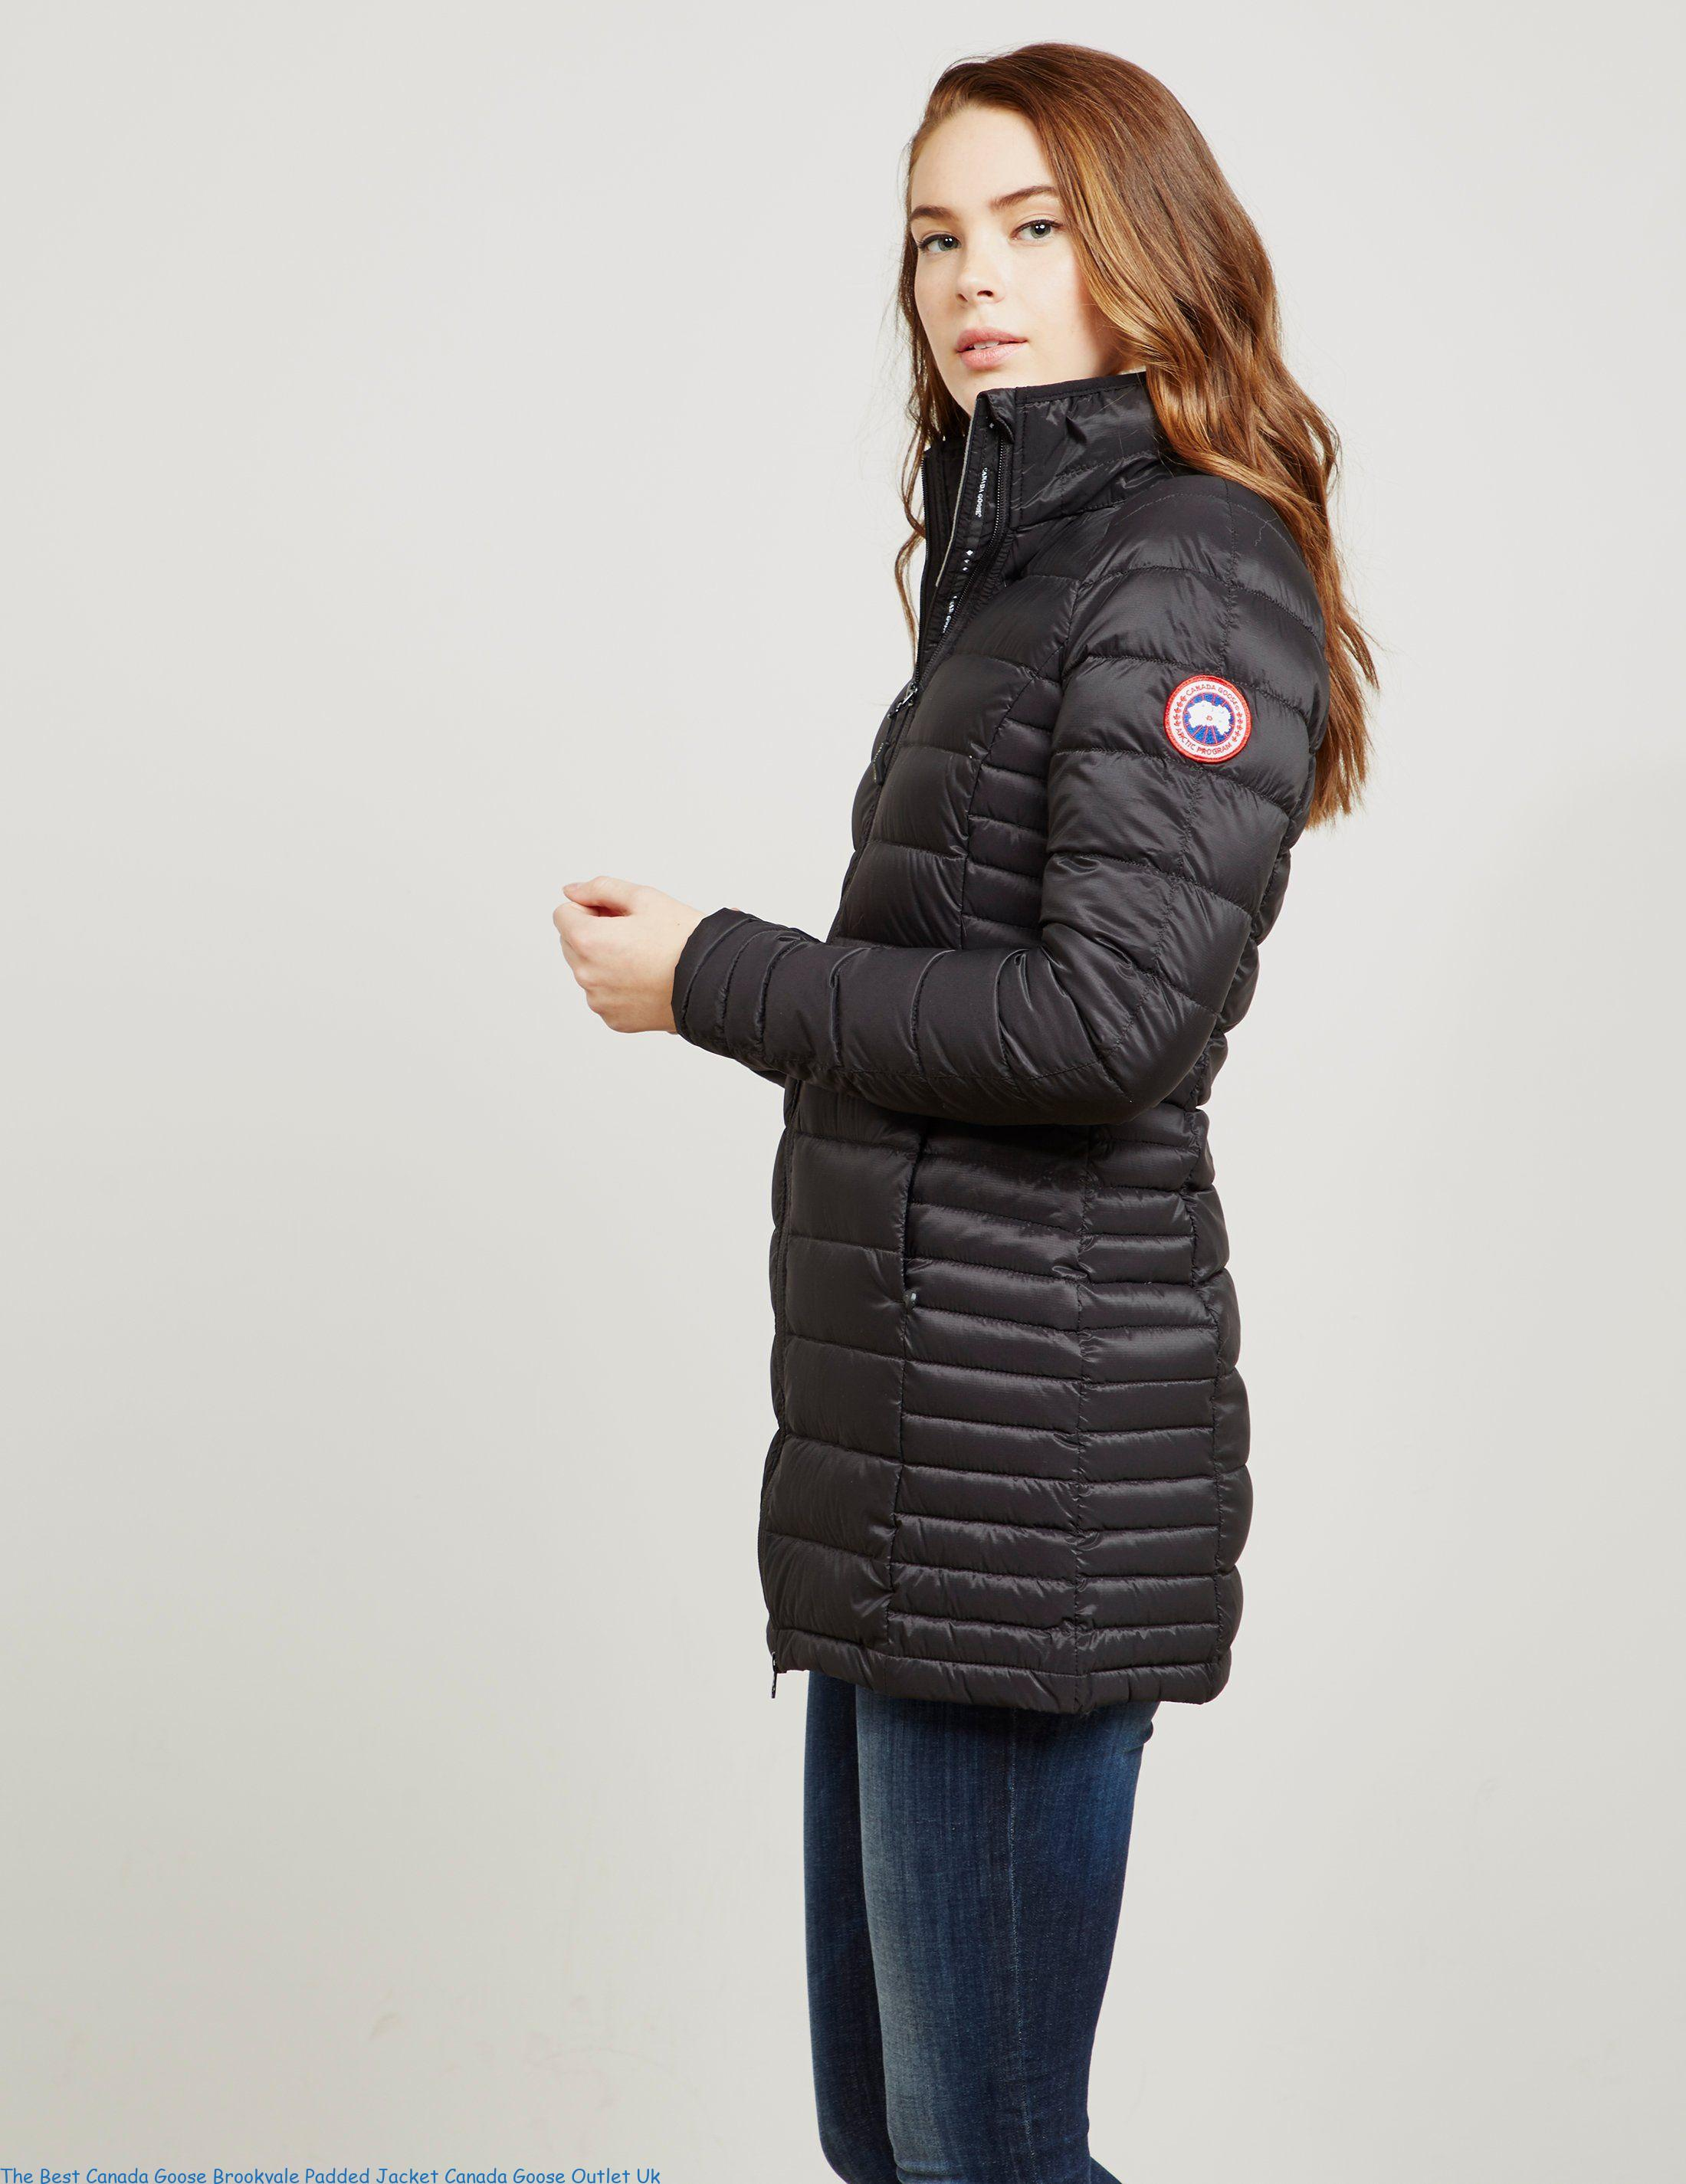 a6091ea2604 The Best Canada Goose Brookvale Padded Jacket Canada Goose Outlet Uk – Canada  Goose UK Outlet | Cheap Canada Goose Jackets,Coats,Parka Online Sale